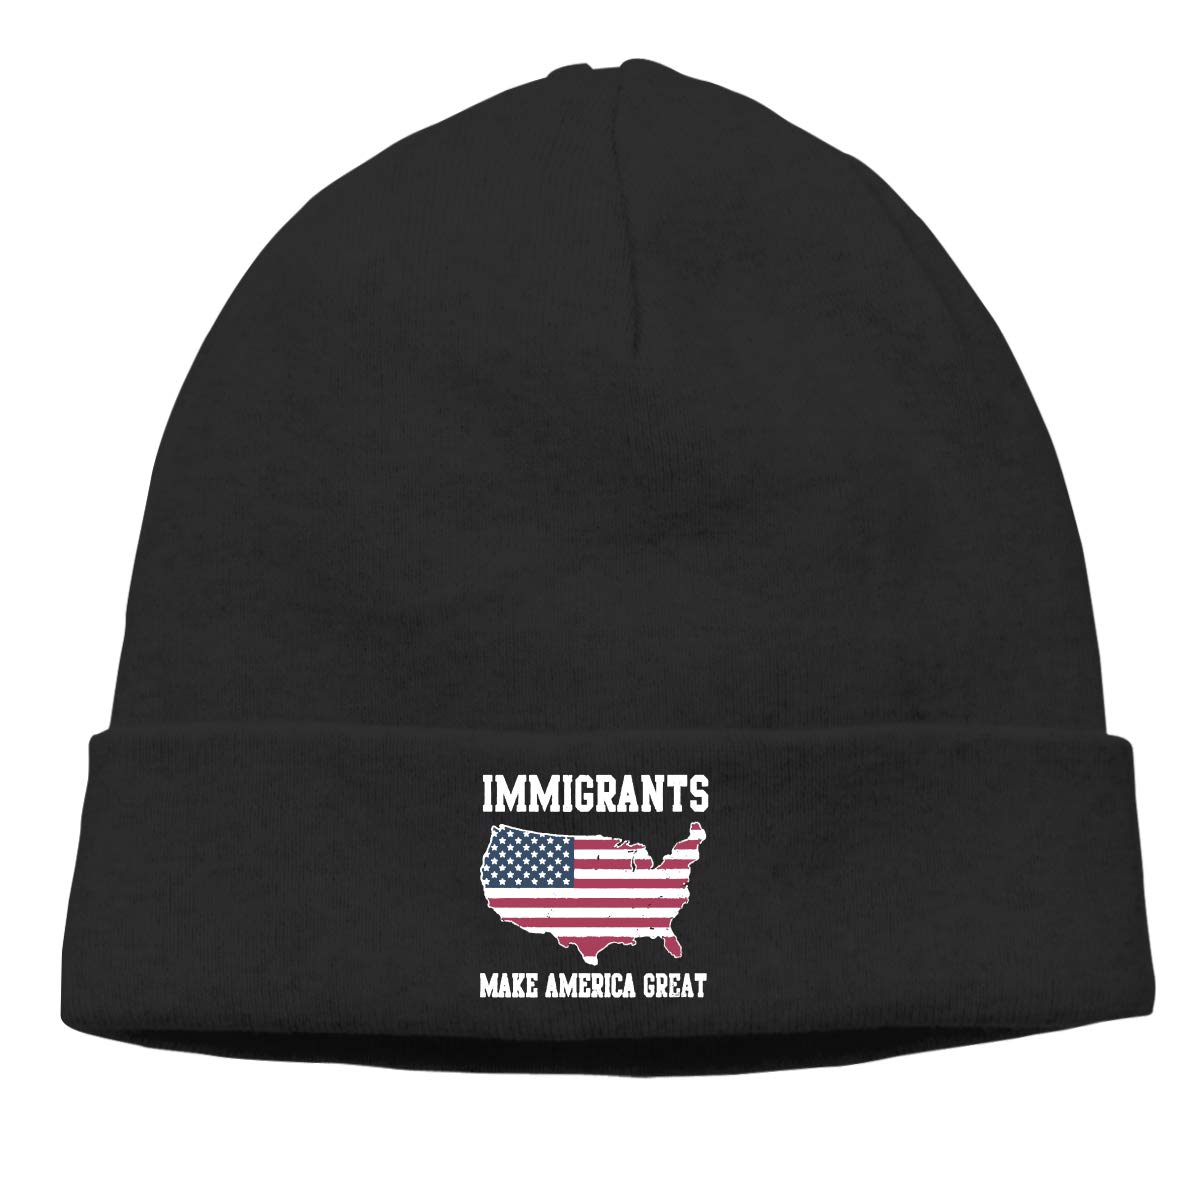 DFKD JKFD Unisex Knitted Hat Skull Hat Beanie Cap for Mens and Womens Immigrants Make America Great